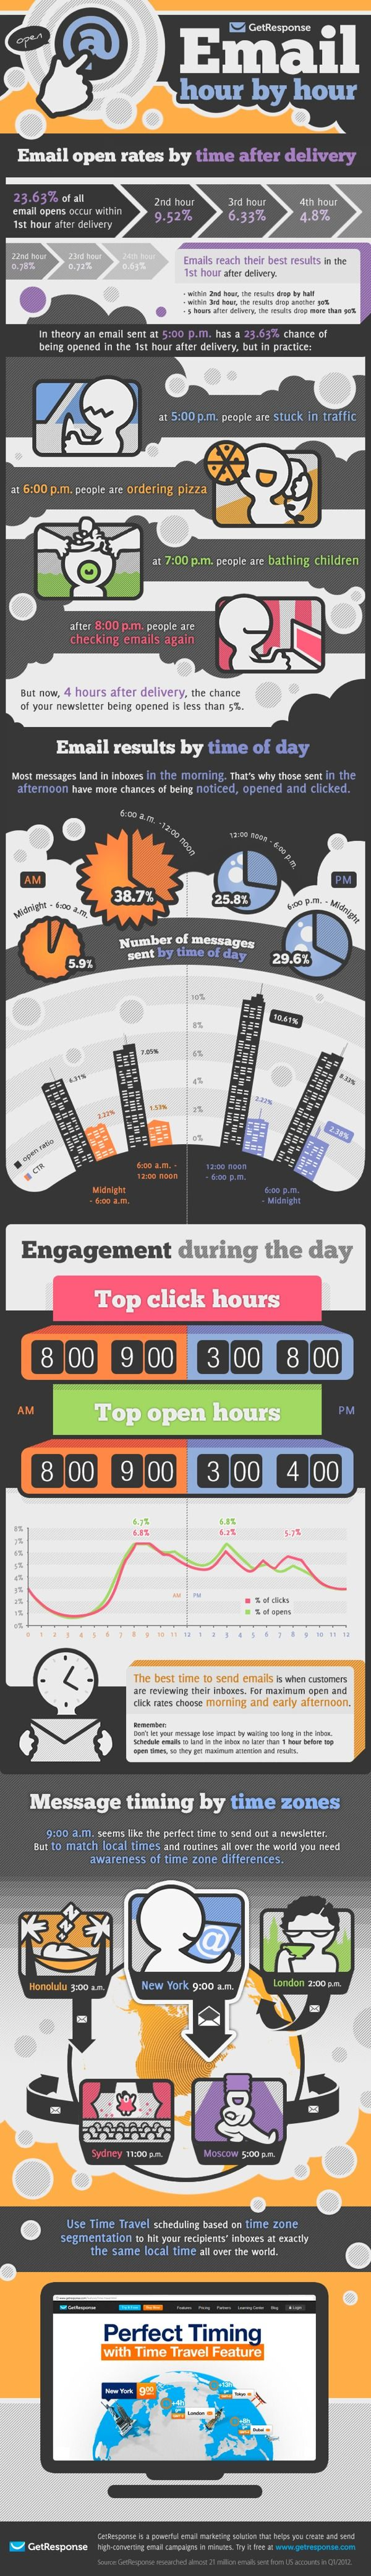 Best time to email. #infographic, #Email #marketing